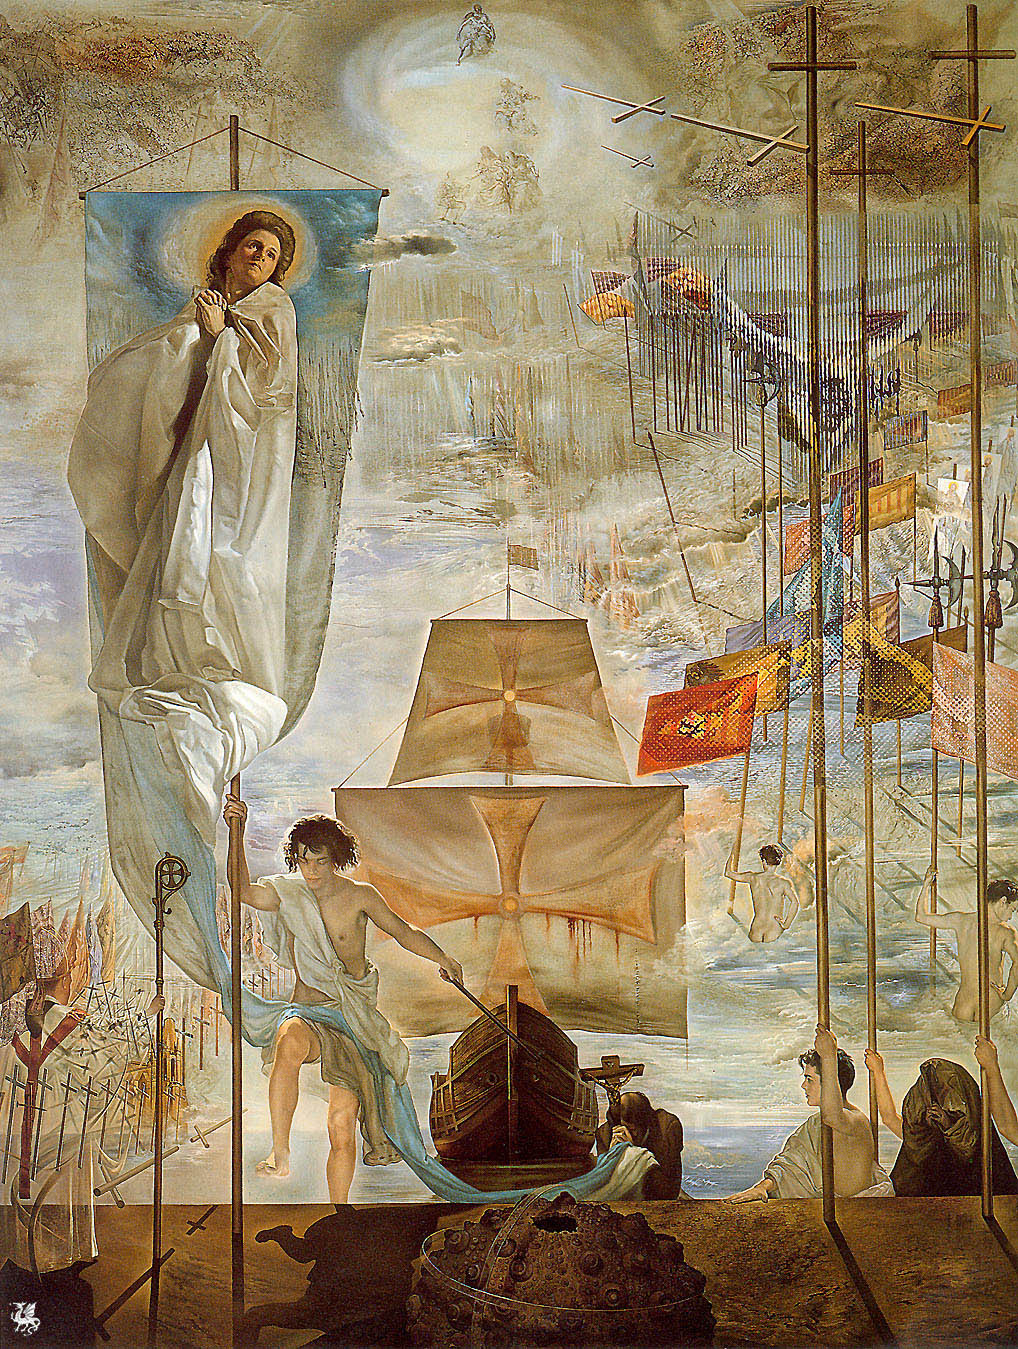 The Discovery of America by Christopher Columbus (1959) by Salvador Dalí